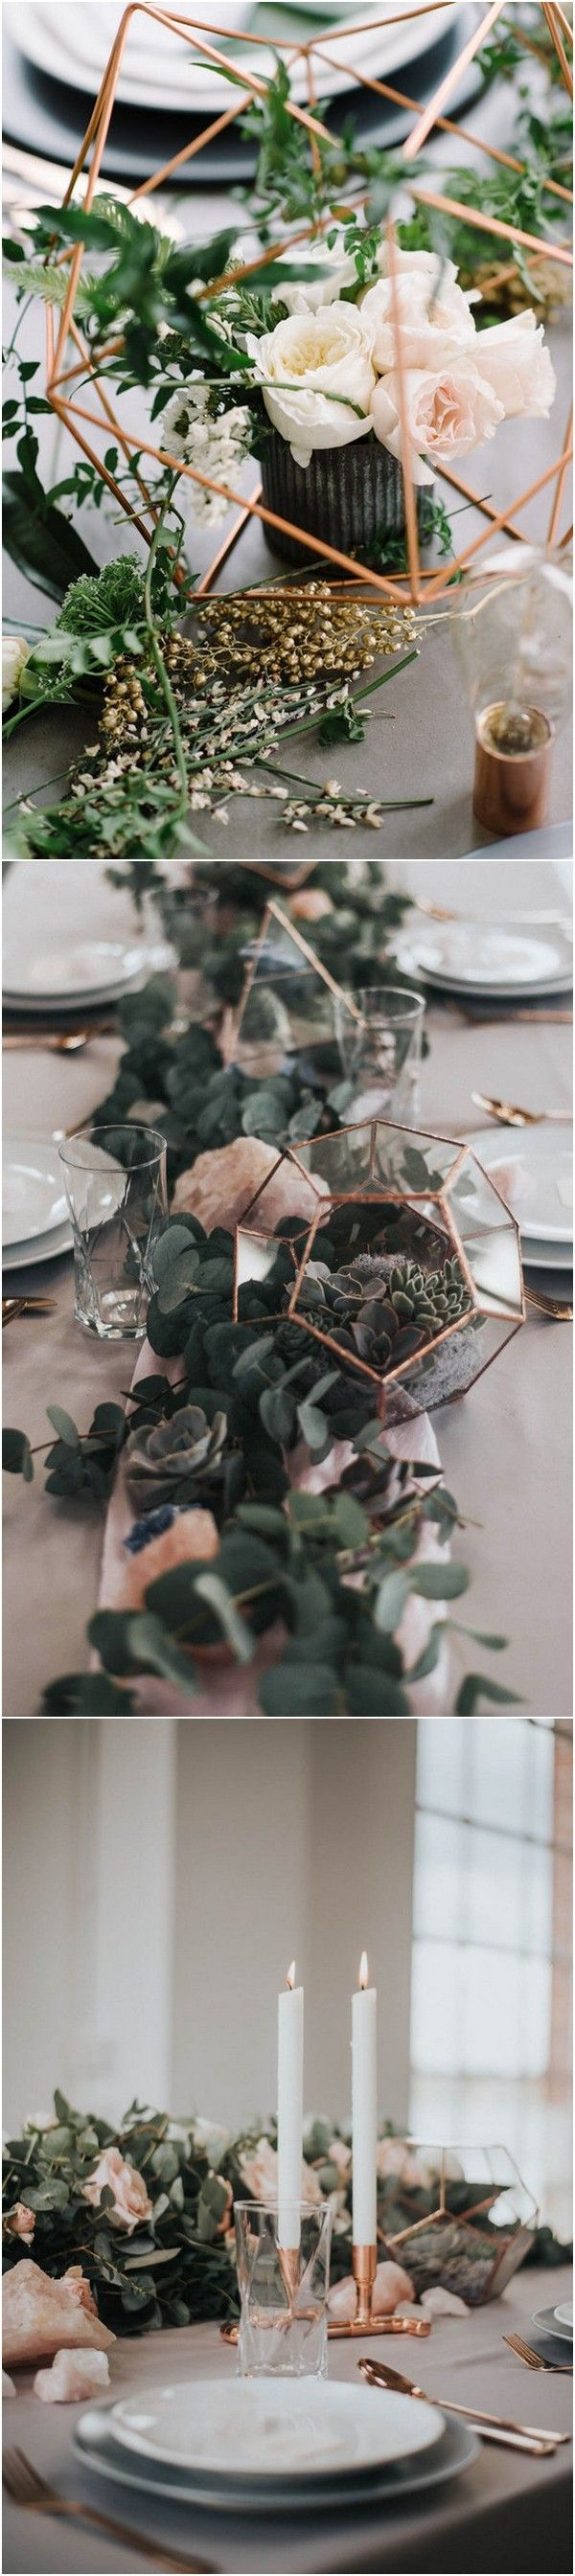 Wedding decoration ideas 2018  Trending Industrial Wedding Centerpiece Ideas for   Wedding